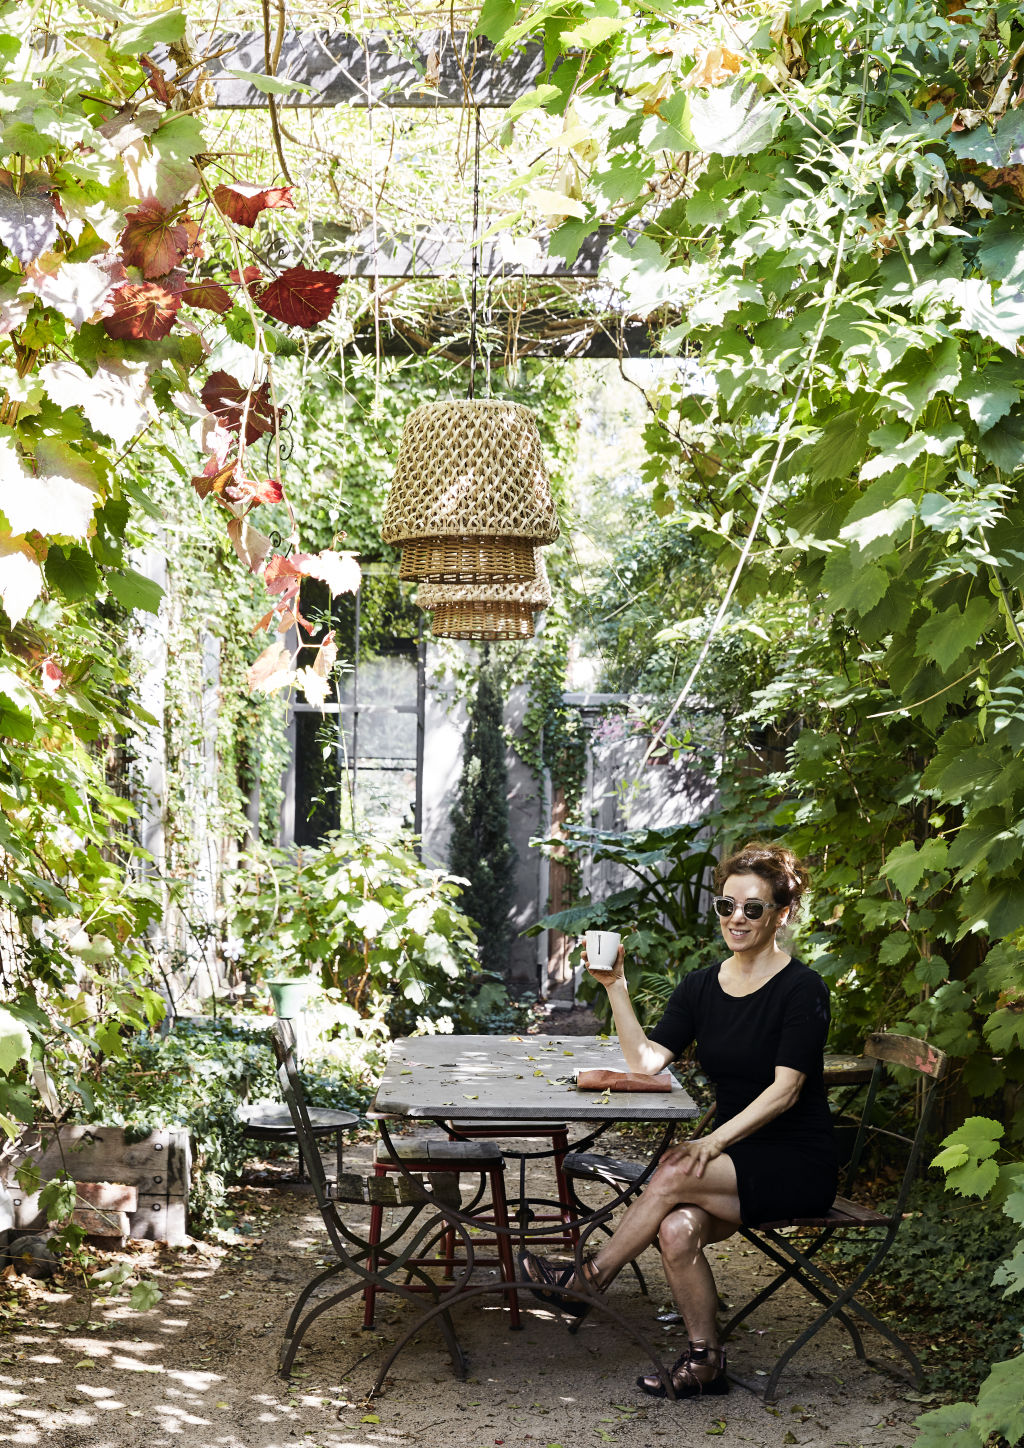 Barb in her lush European garden, which she created with the help of local landscaper Gavin Smith. Styling: Annie Portelli.